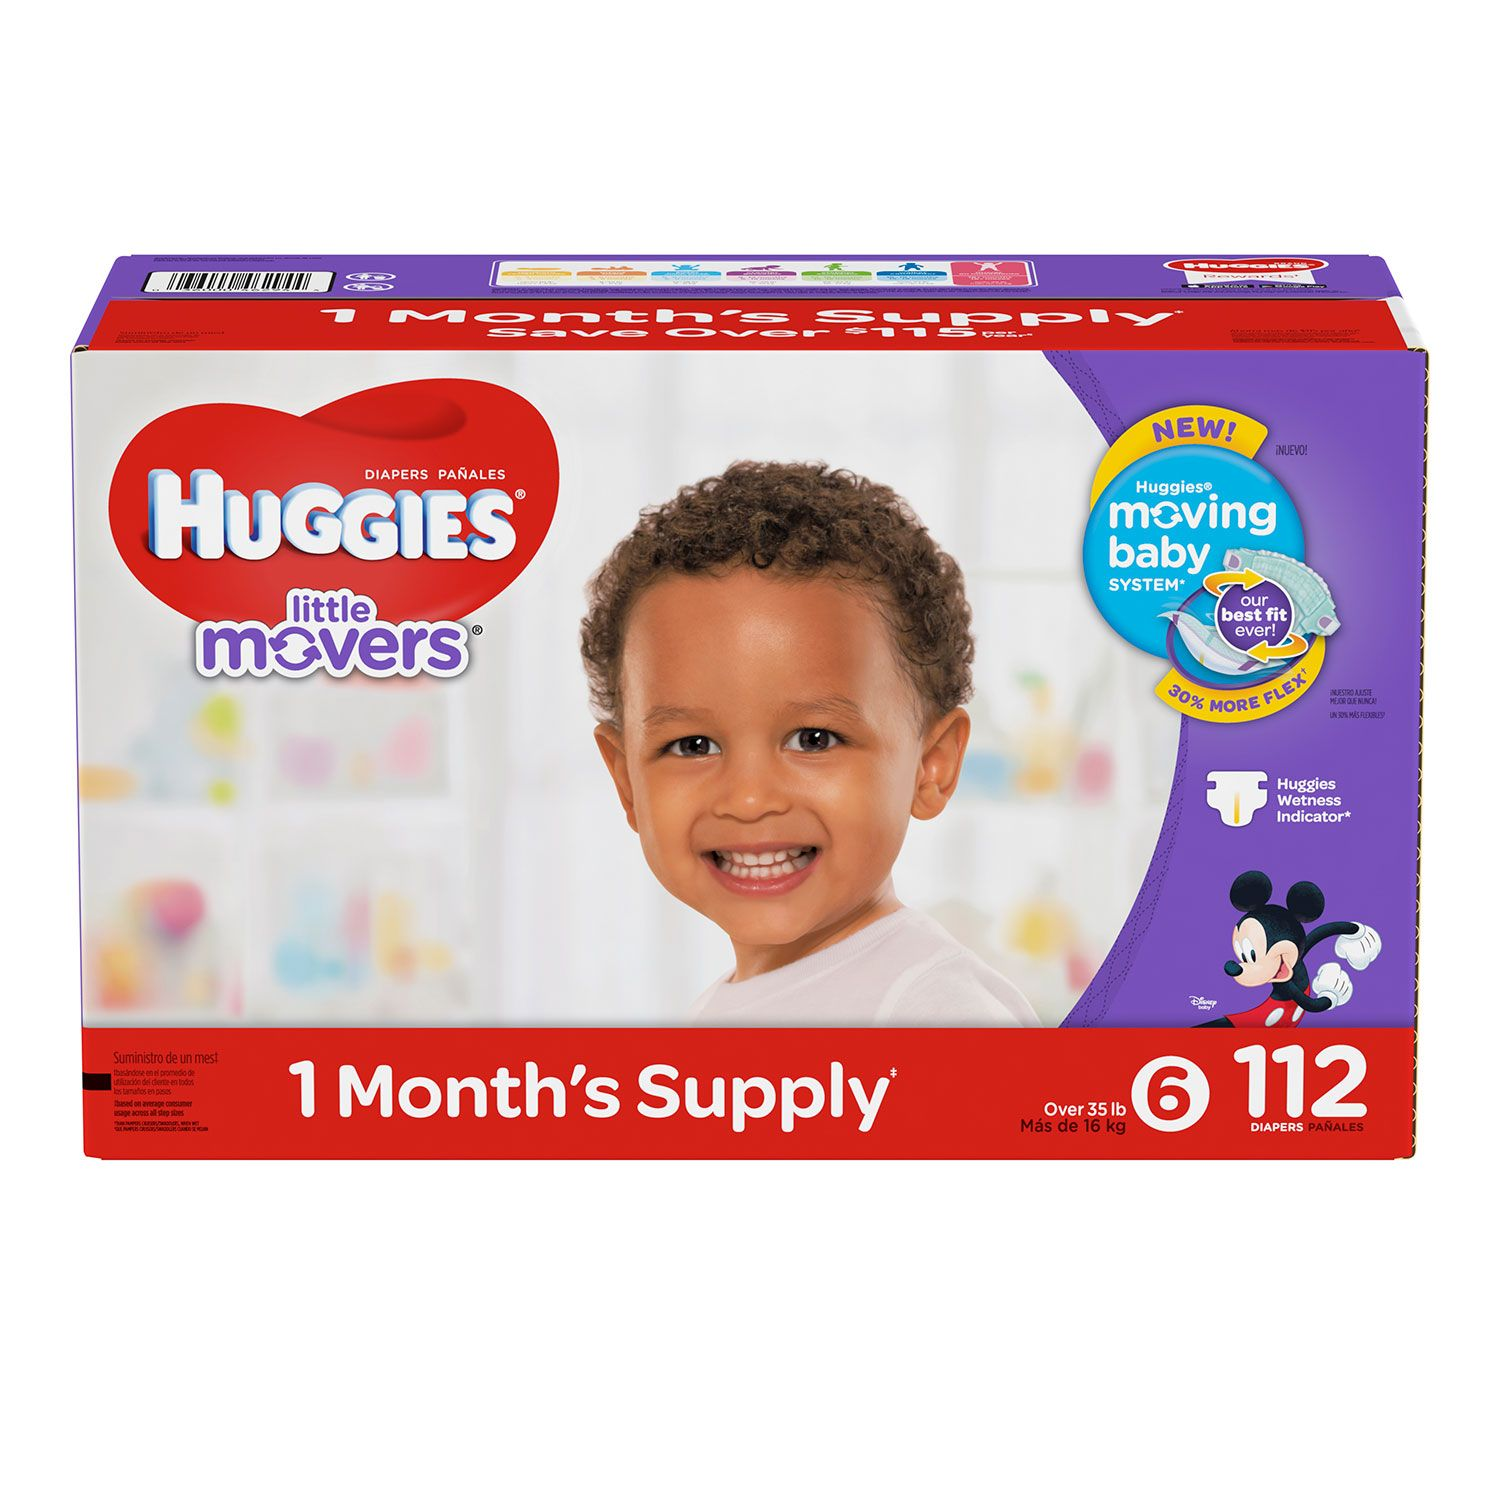 Kimberly-clark Huggies Little Movers Diapers (Size 6, 112 ct.)